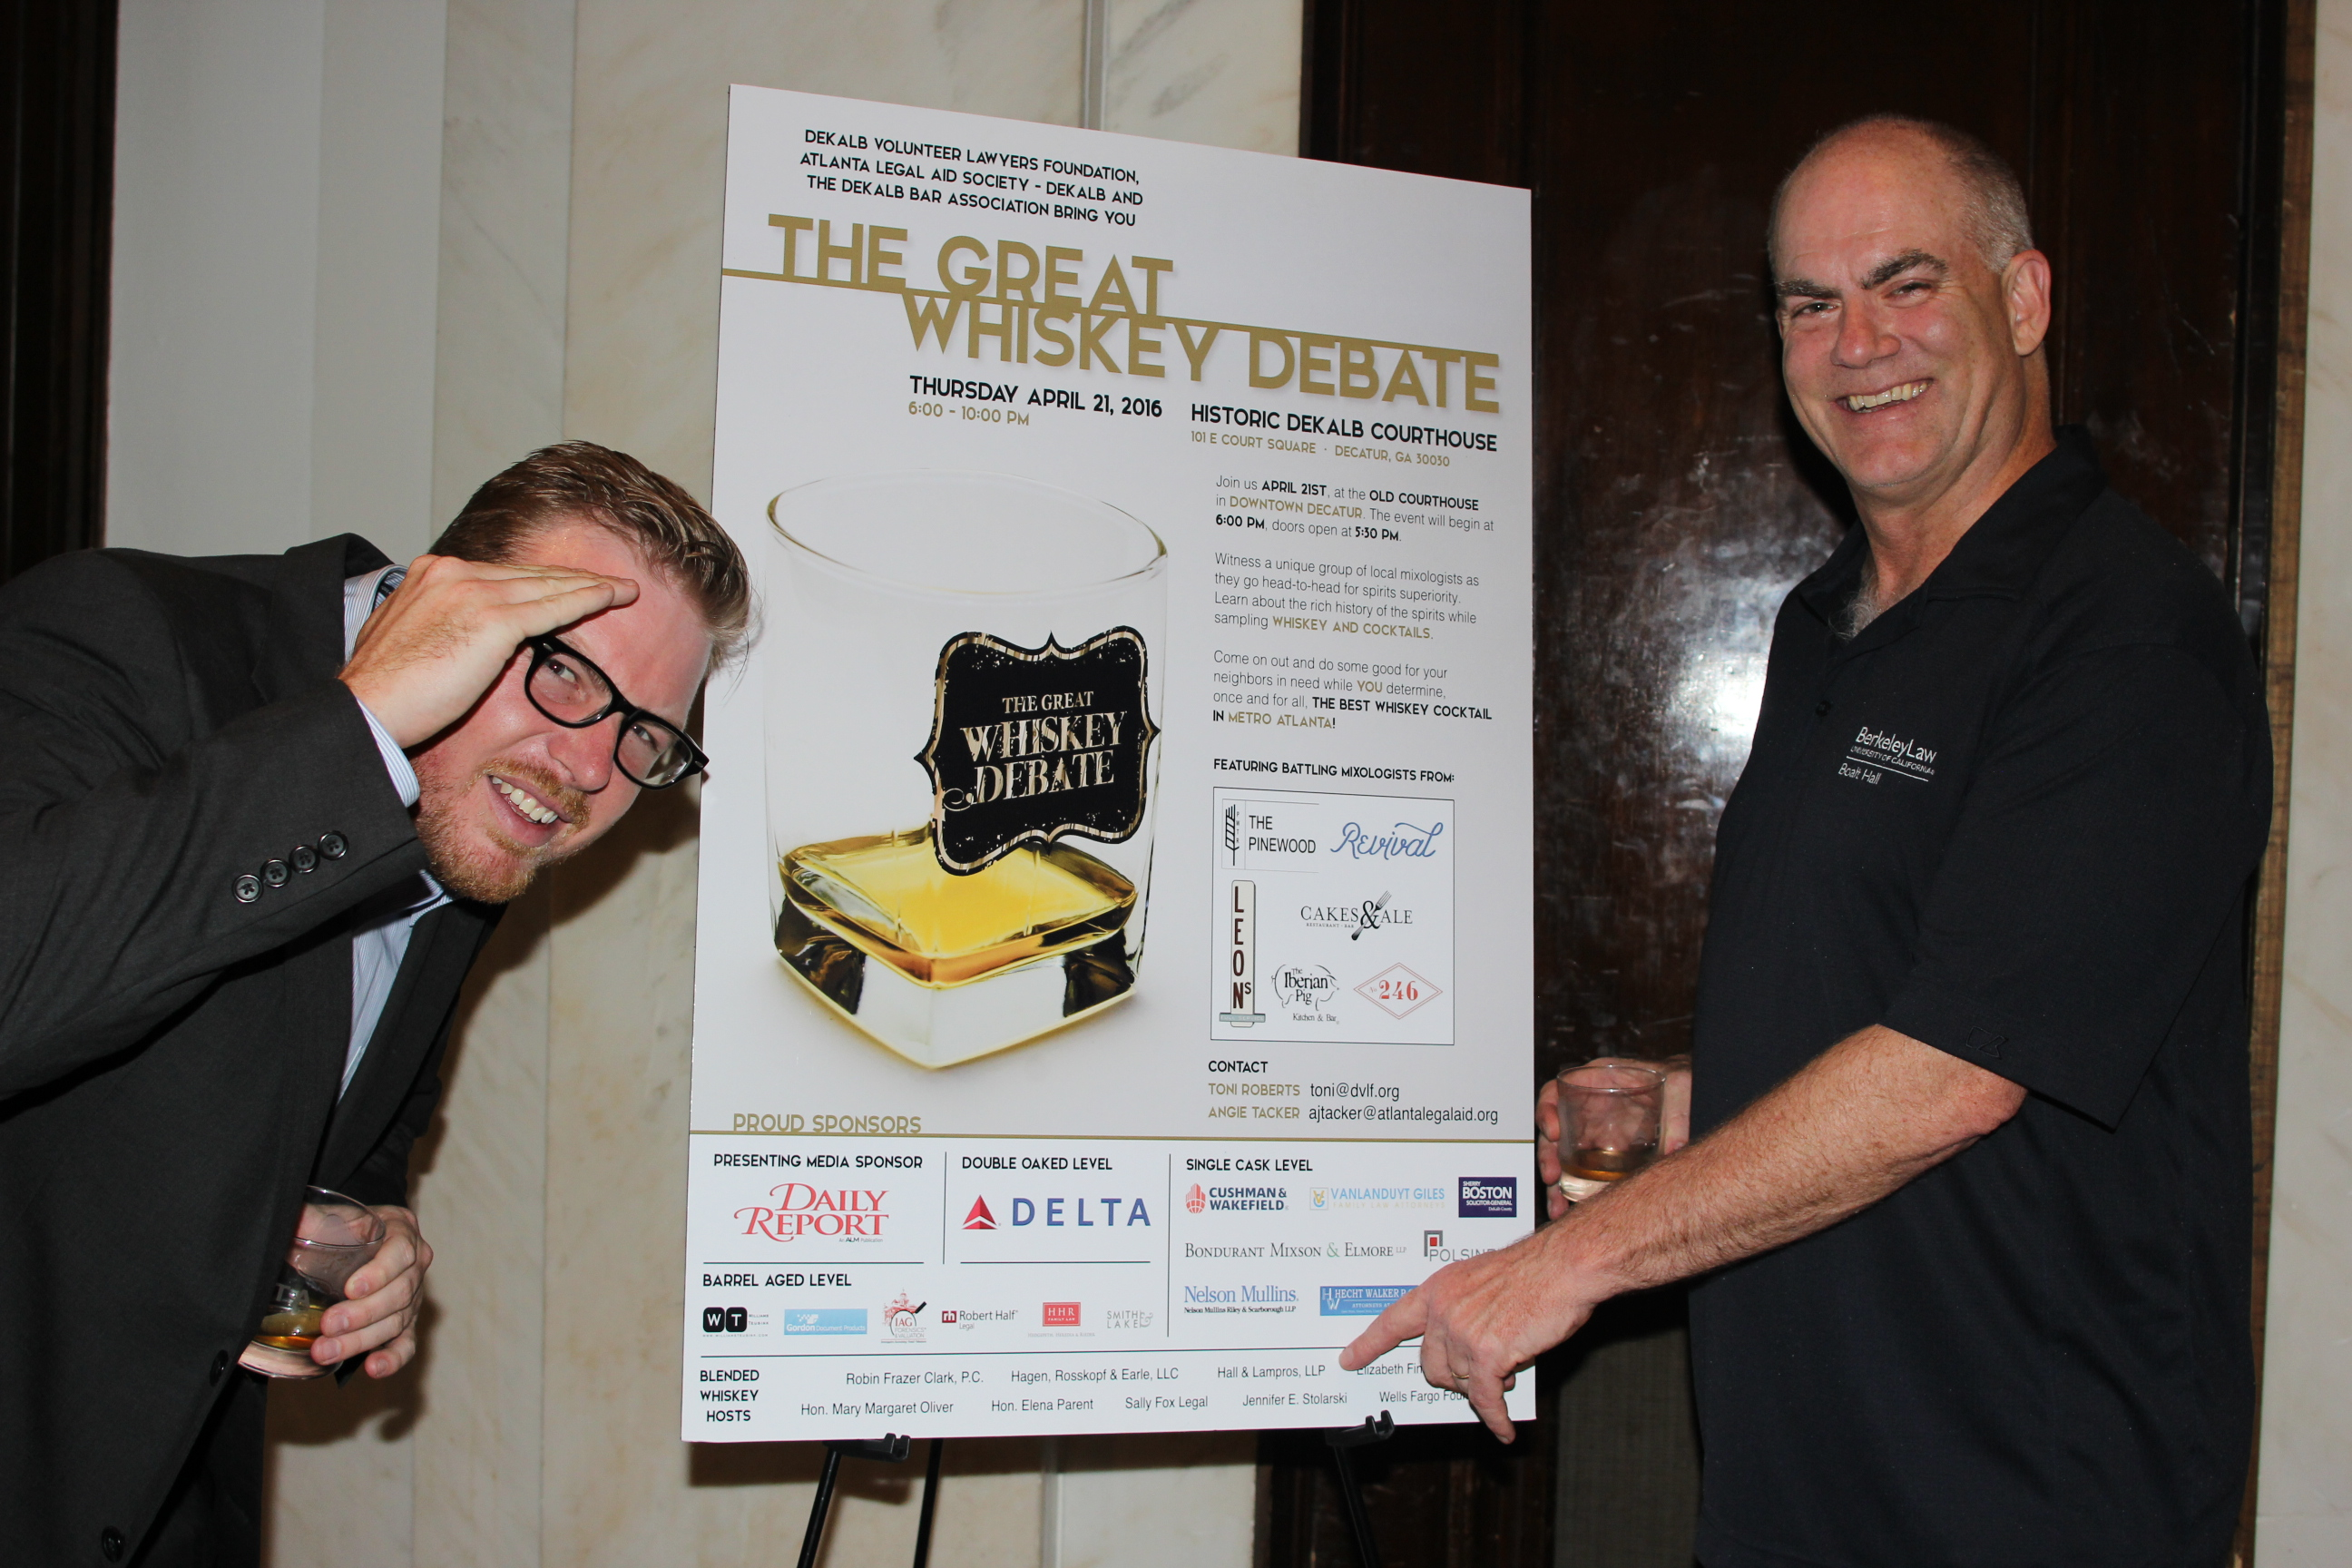 DVLF-The Great Whisky Debate